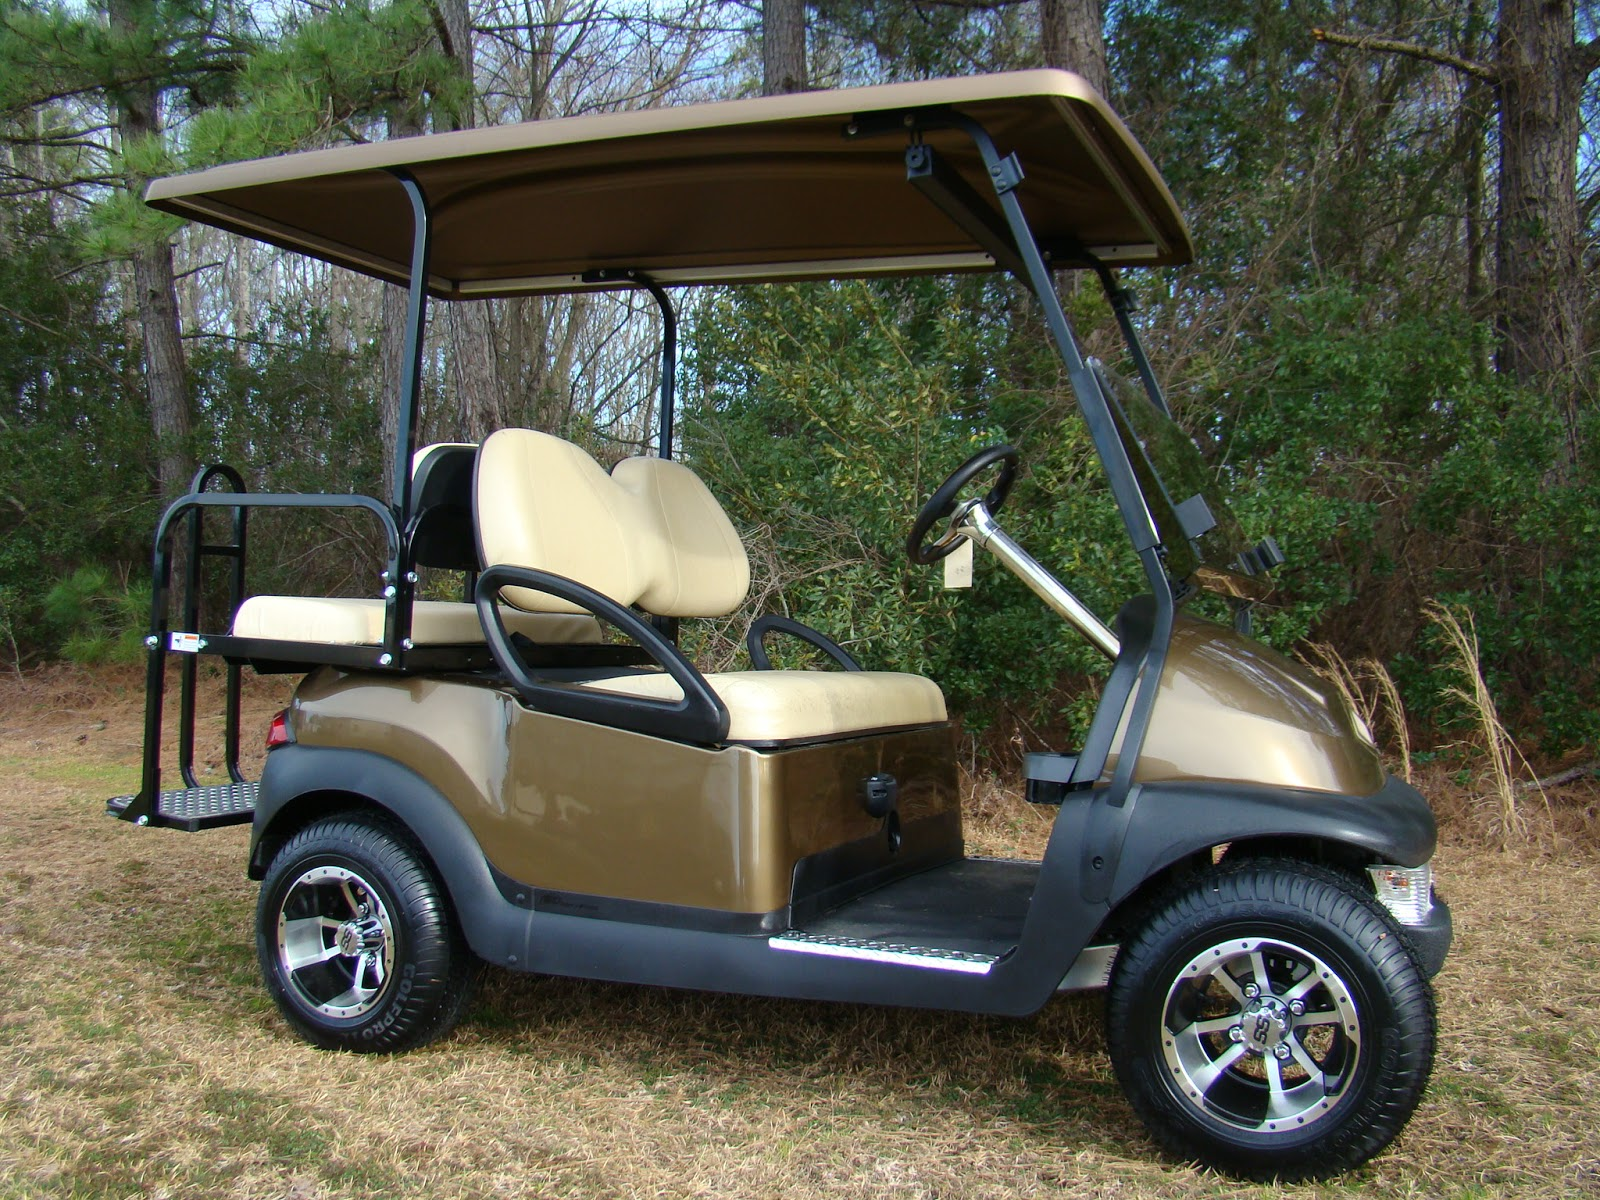 King of carts new used electric gas golf carts for - Golf cart rentals garden city sc ...